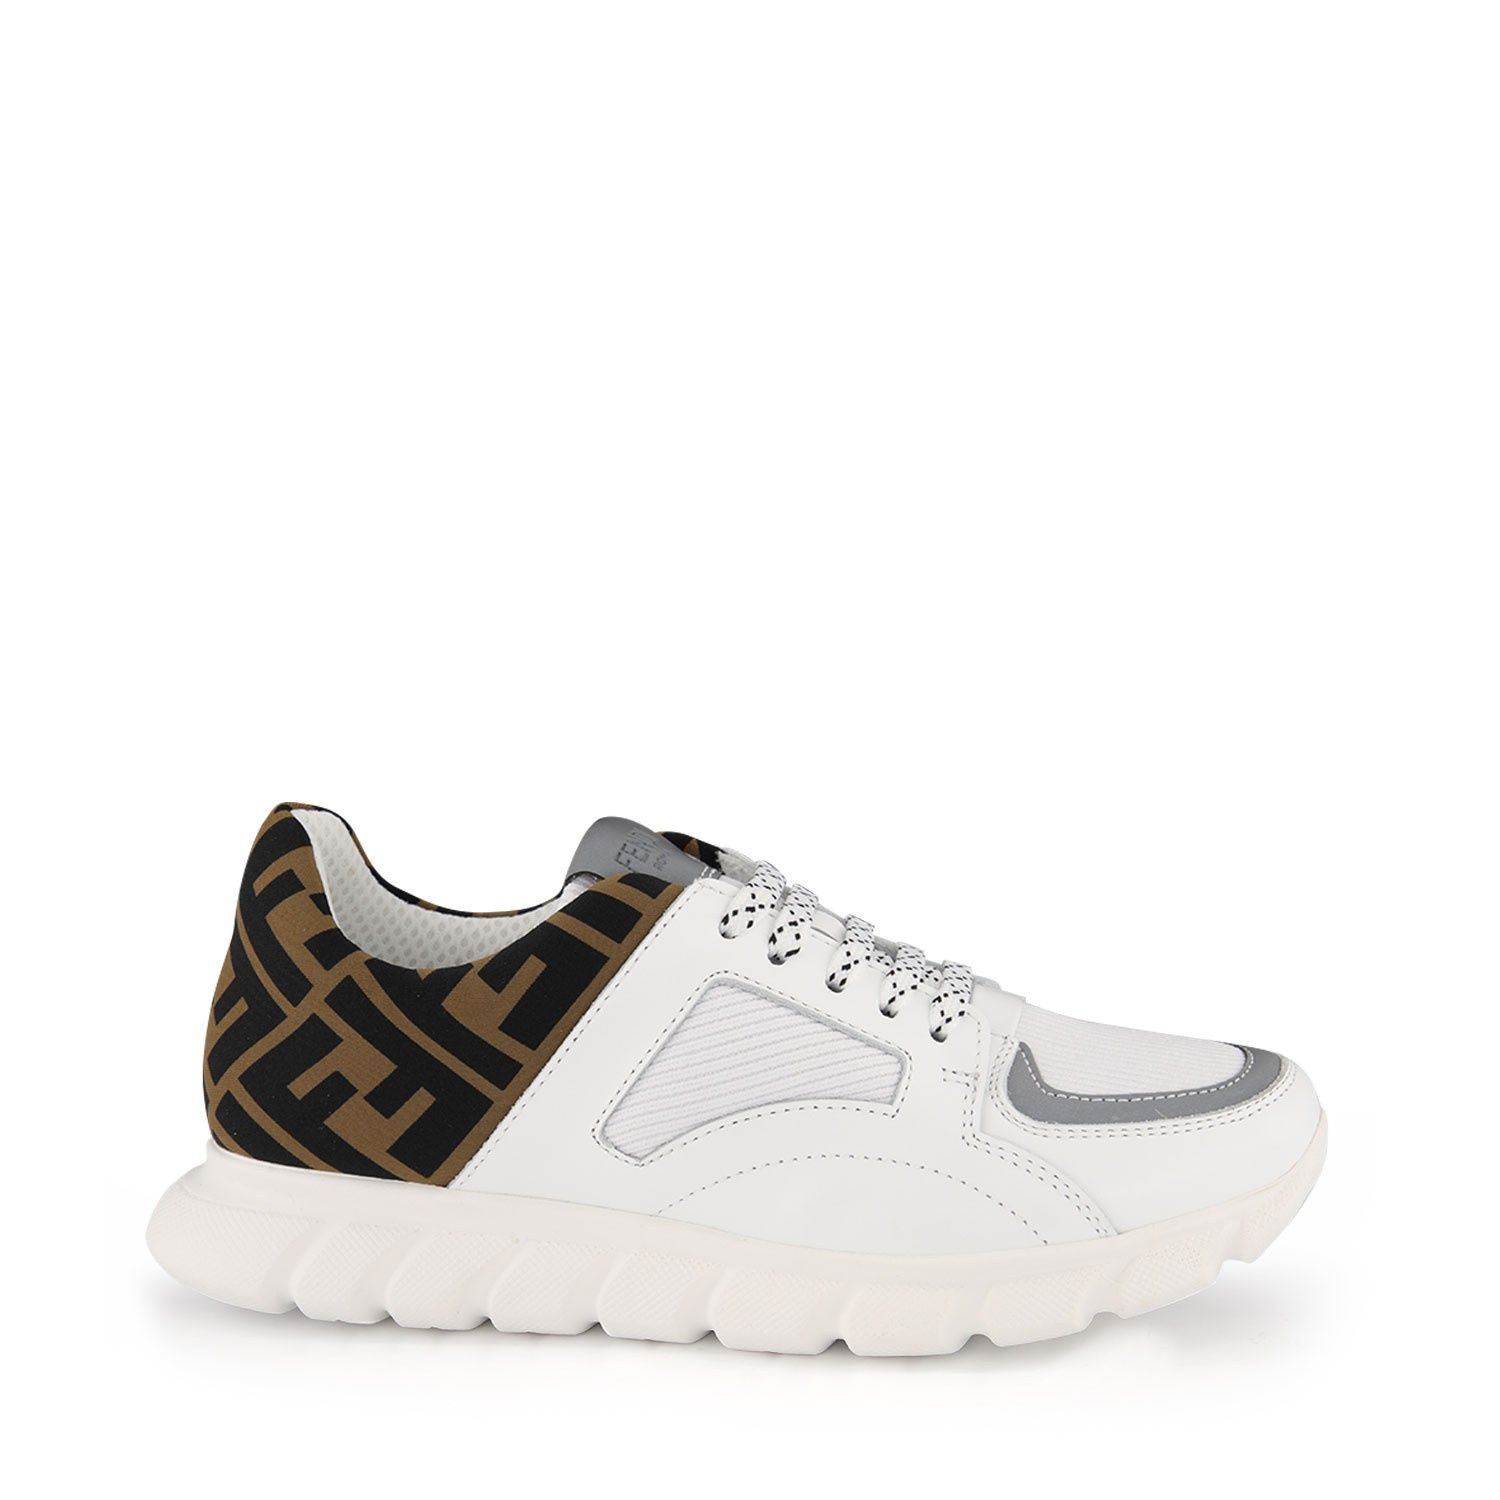 Picture of Fendi JMR333 A8CJ kids sneakers white